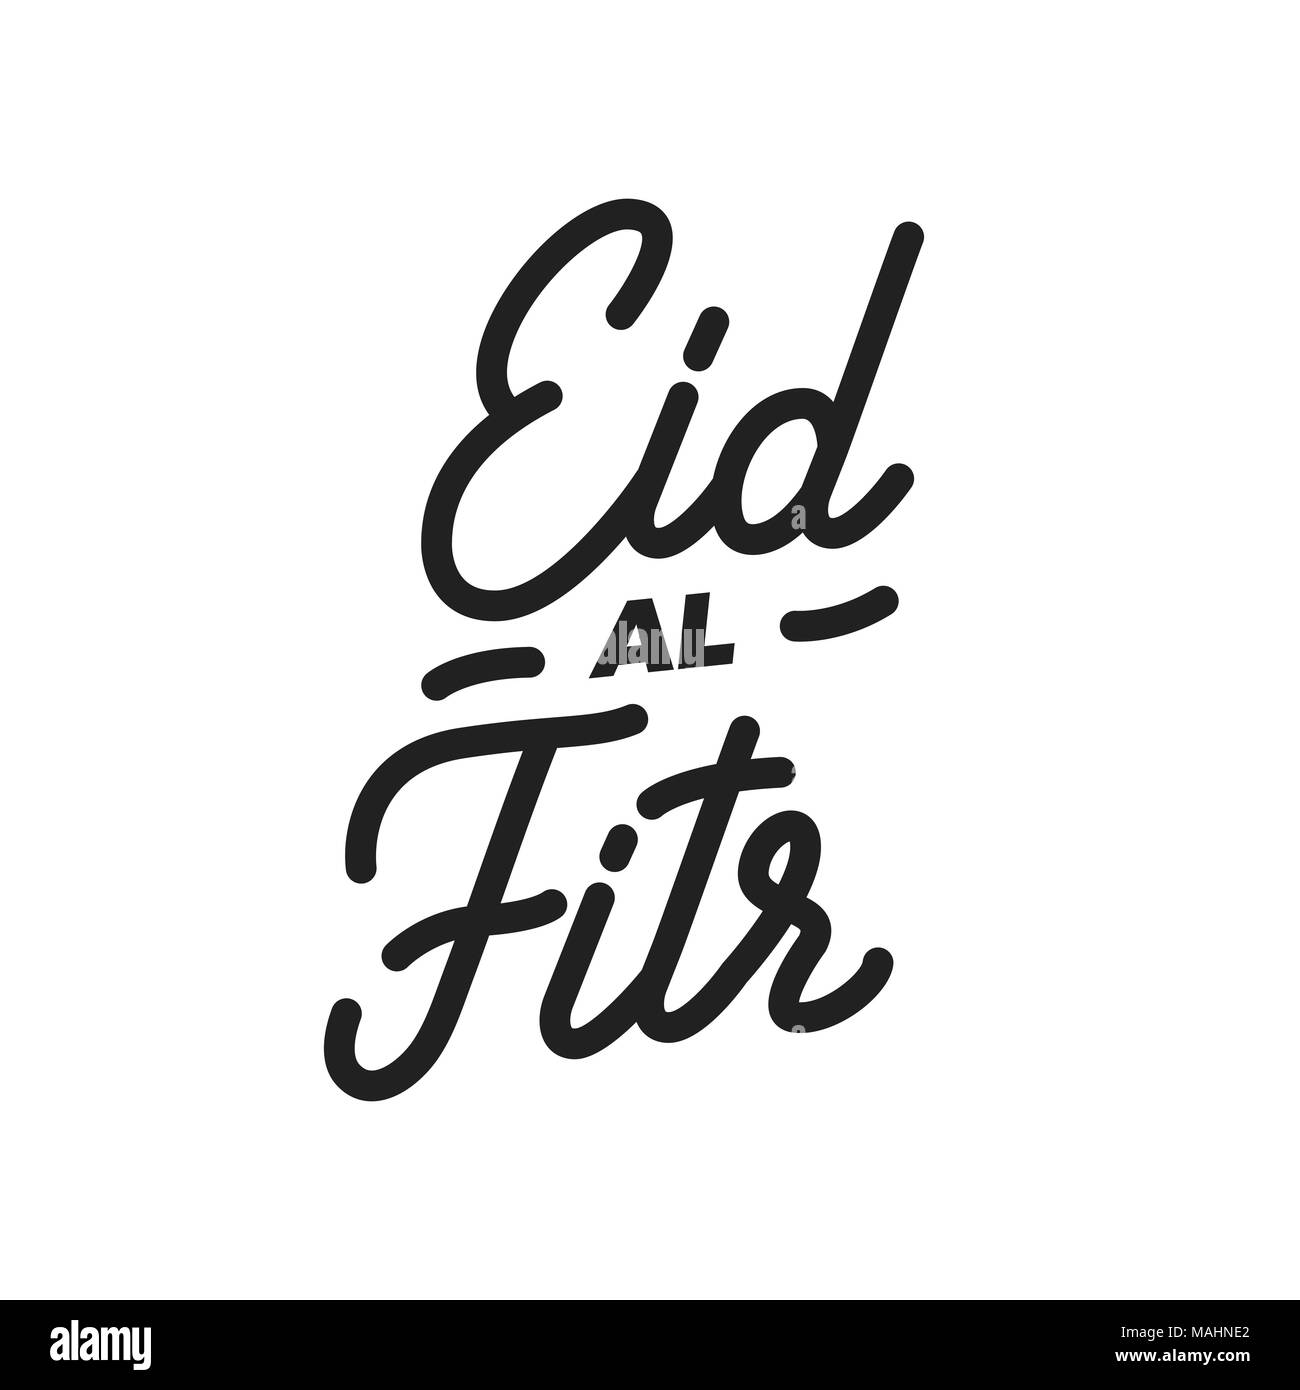 Cool Idul Eid Al-Fitr Feast - eid-al-fitr-muslim-holiday-lettering-design-for-the-end-of-ramadan-holy-month-feast-of-breaking-the-fast-card-MAHNE2  Graphic_423465 .jpg